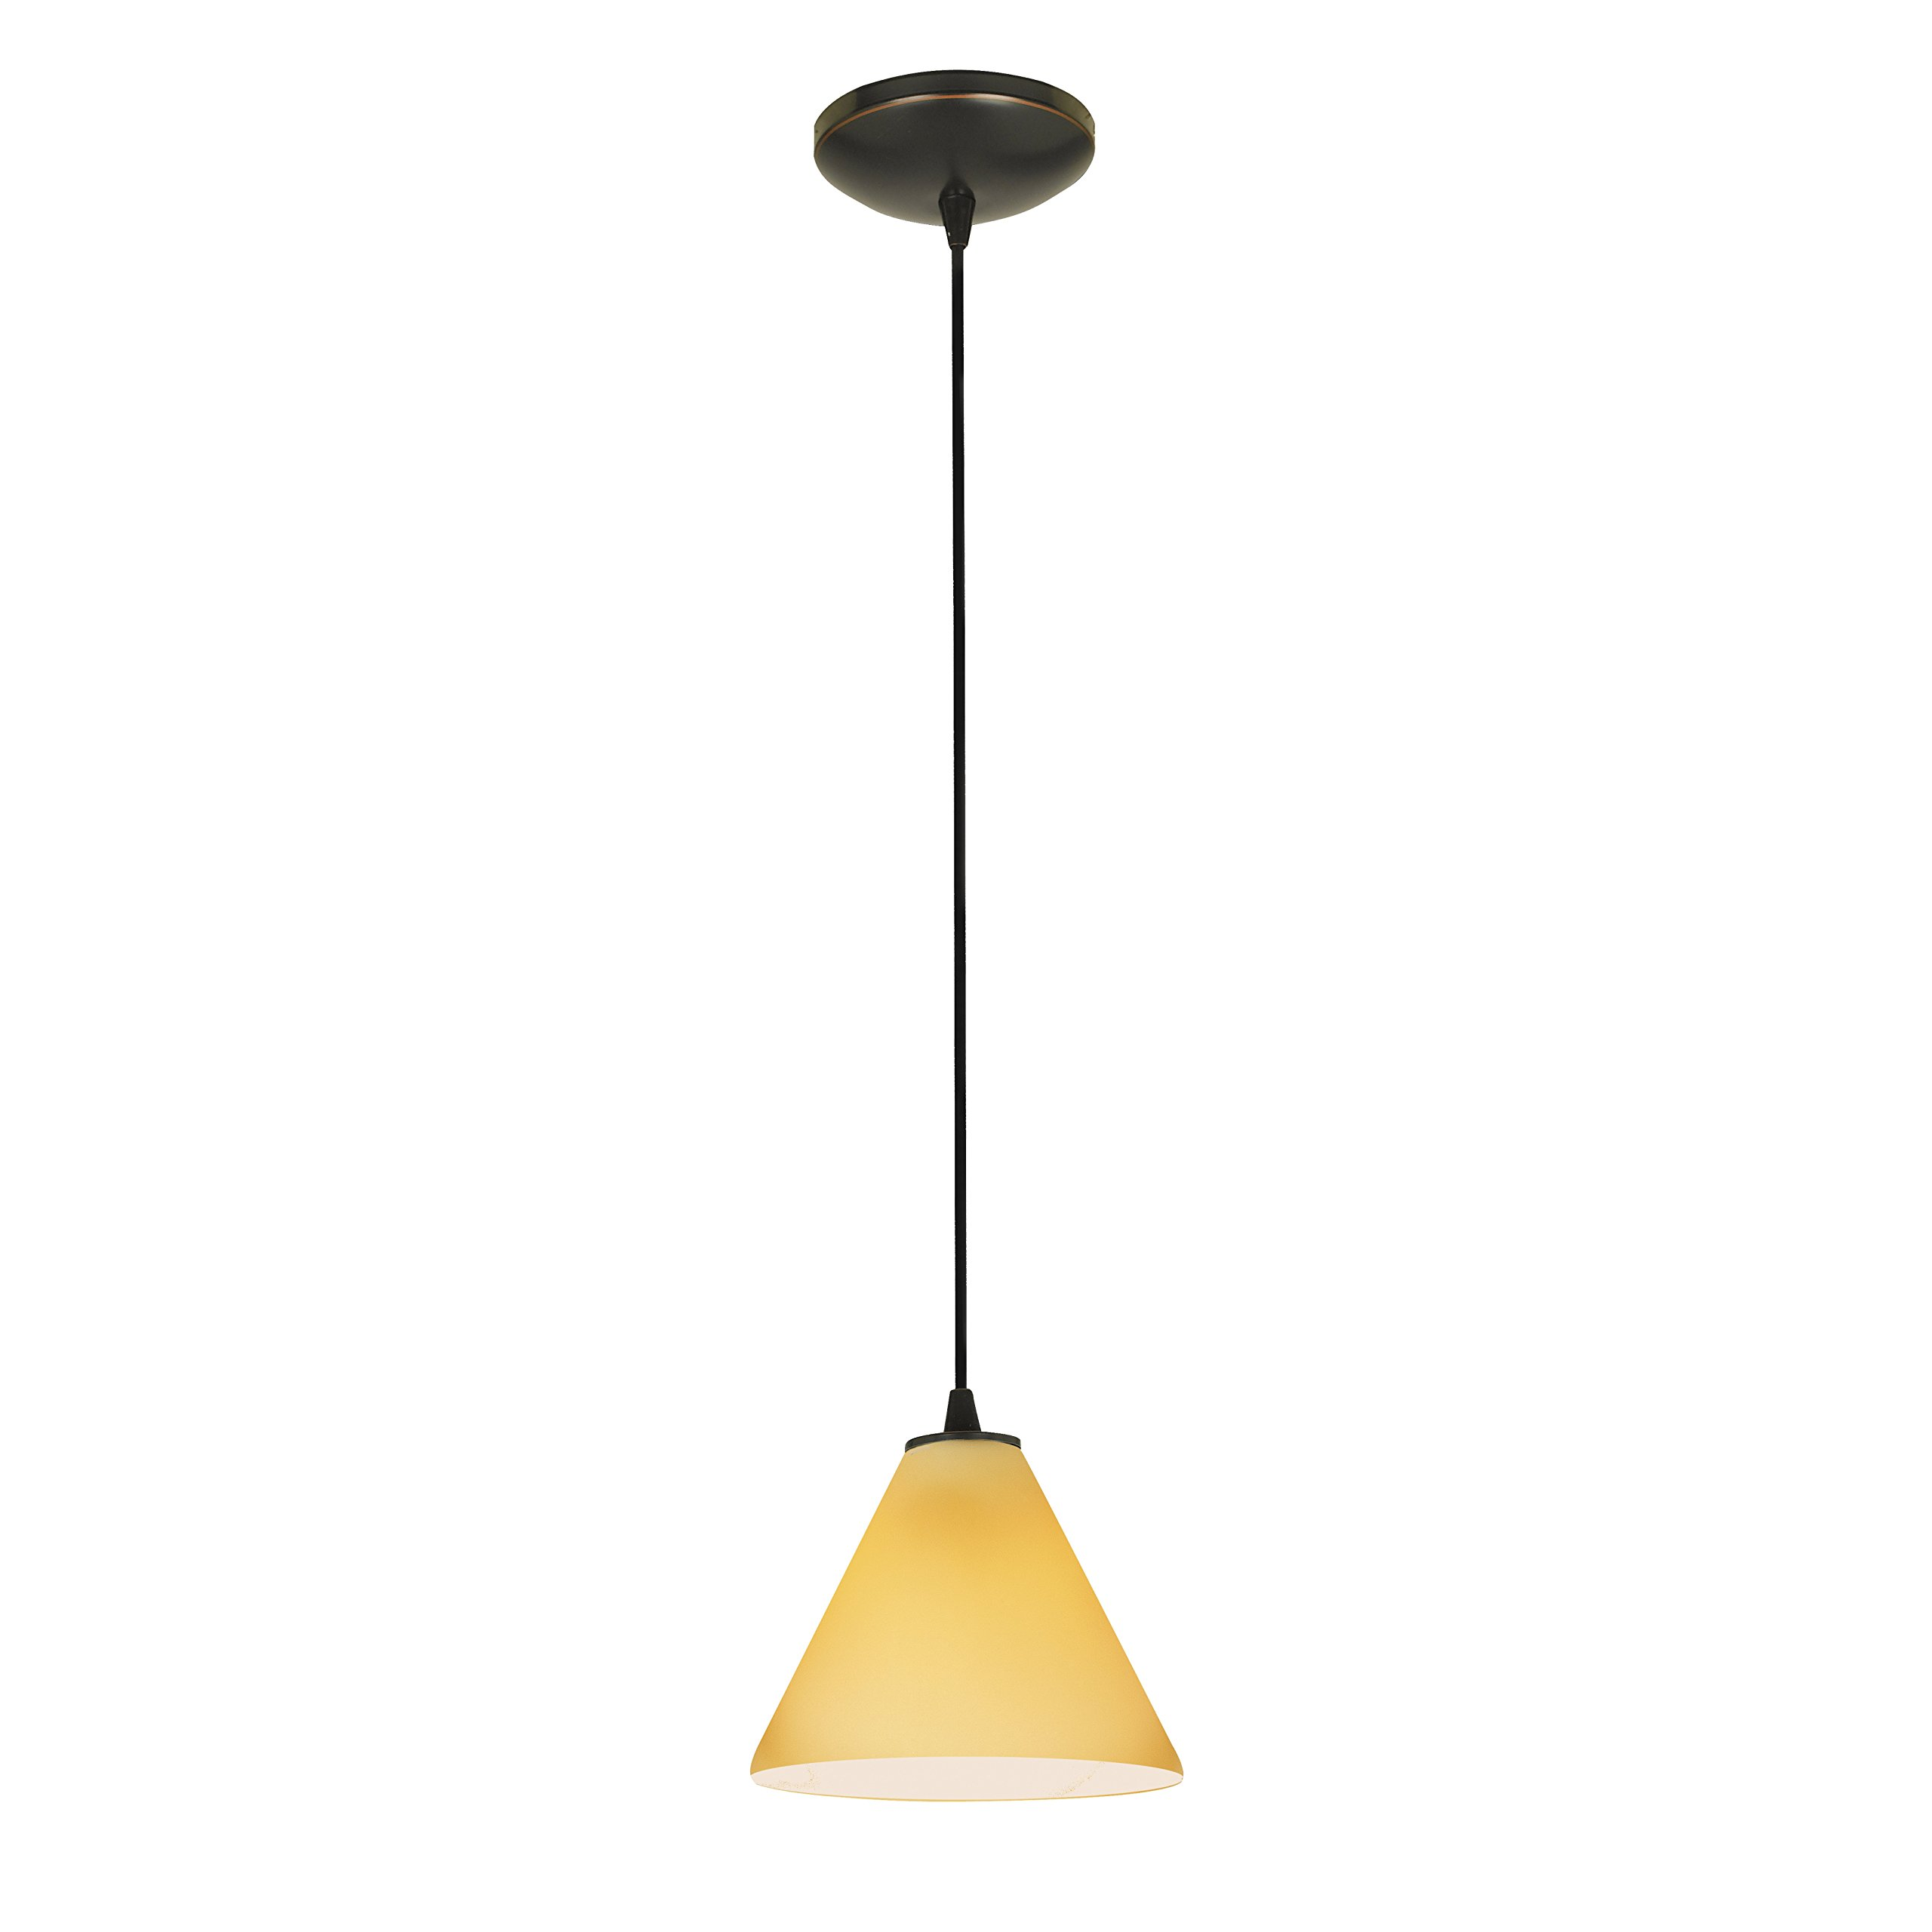 Martini - E26 LED Cord Pendant - Oil Rubbed Bronze Finish - Amber Glass Shade